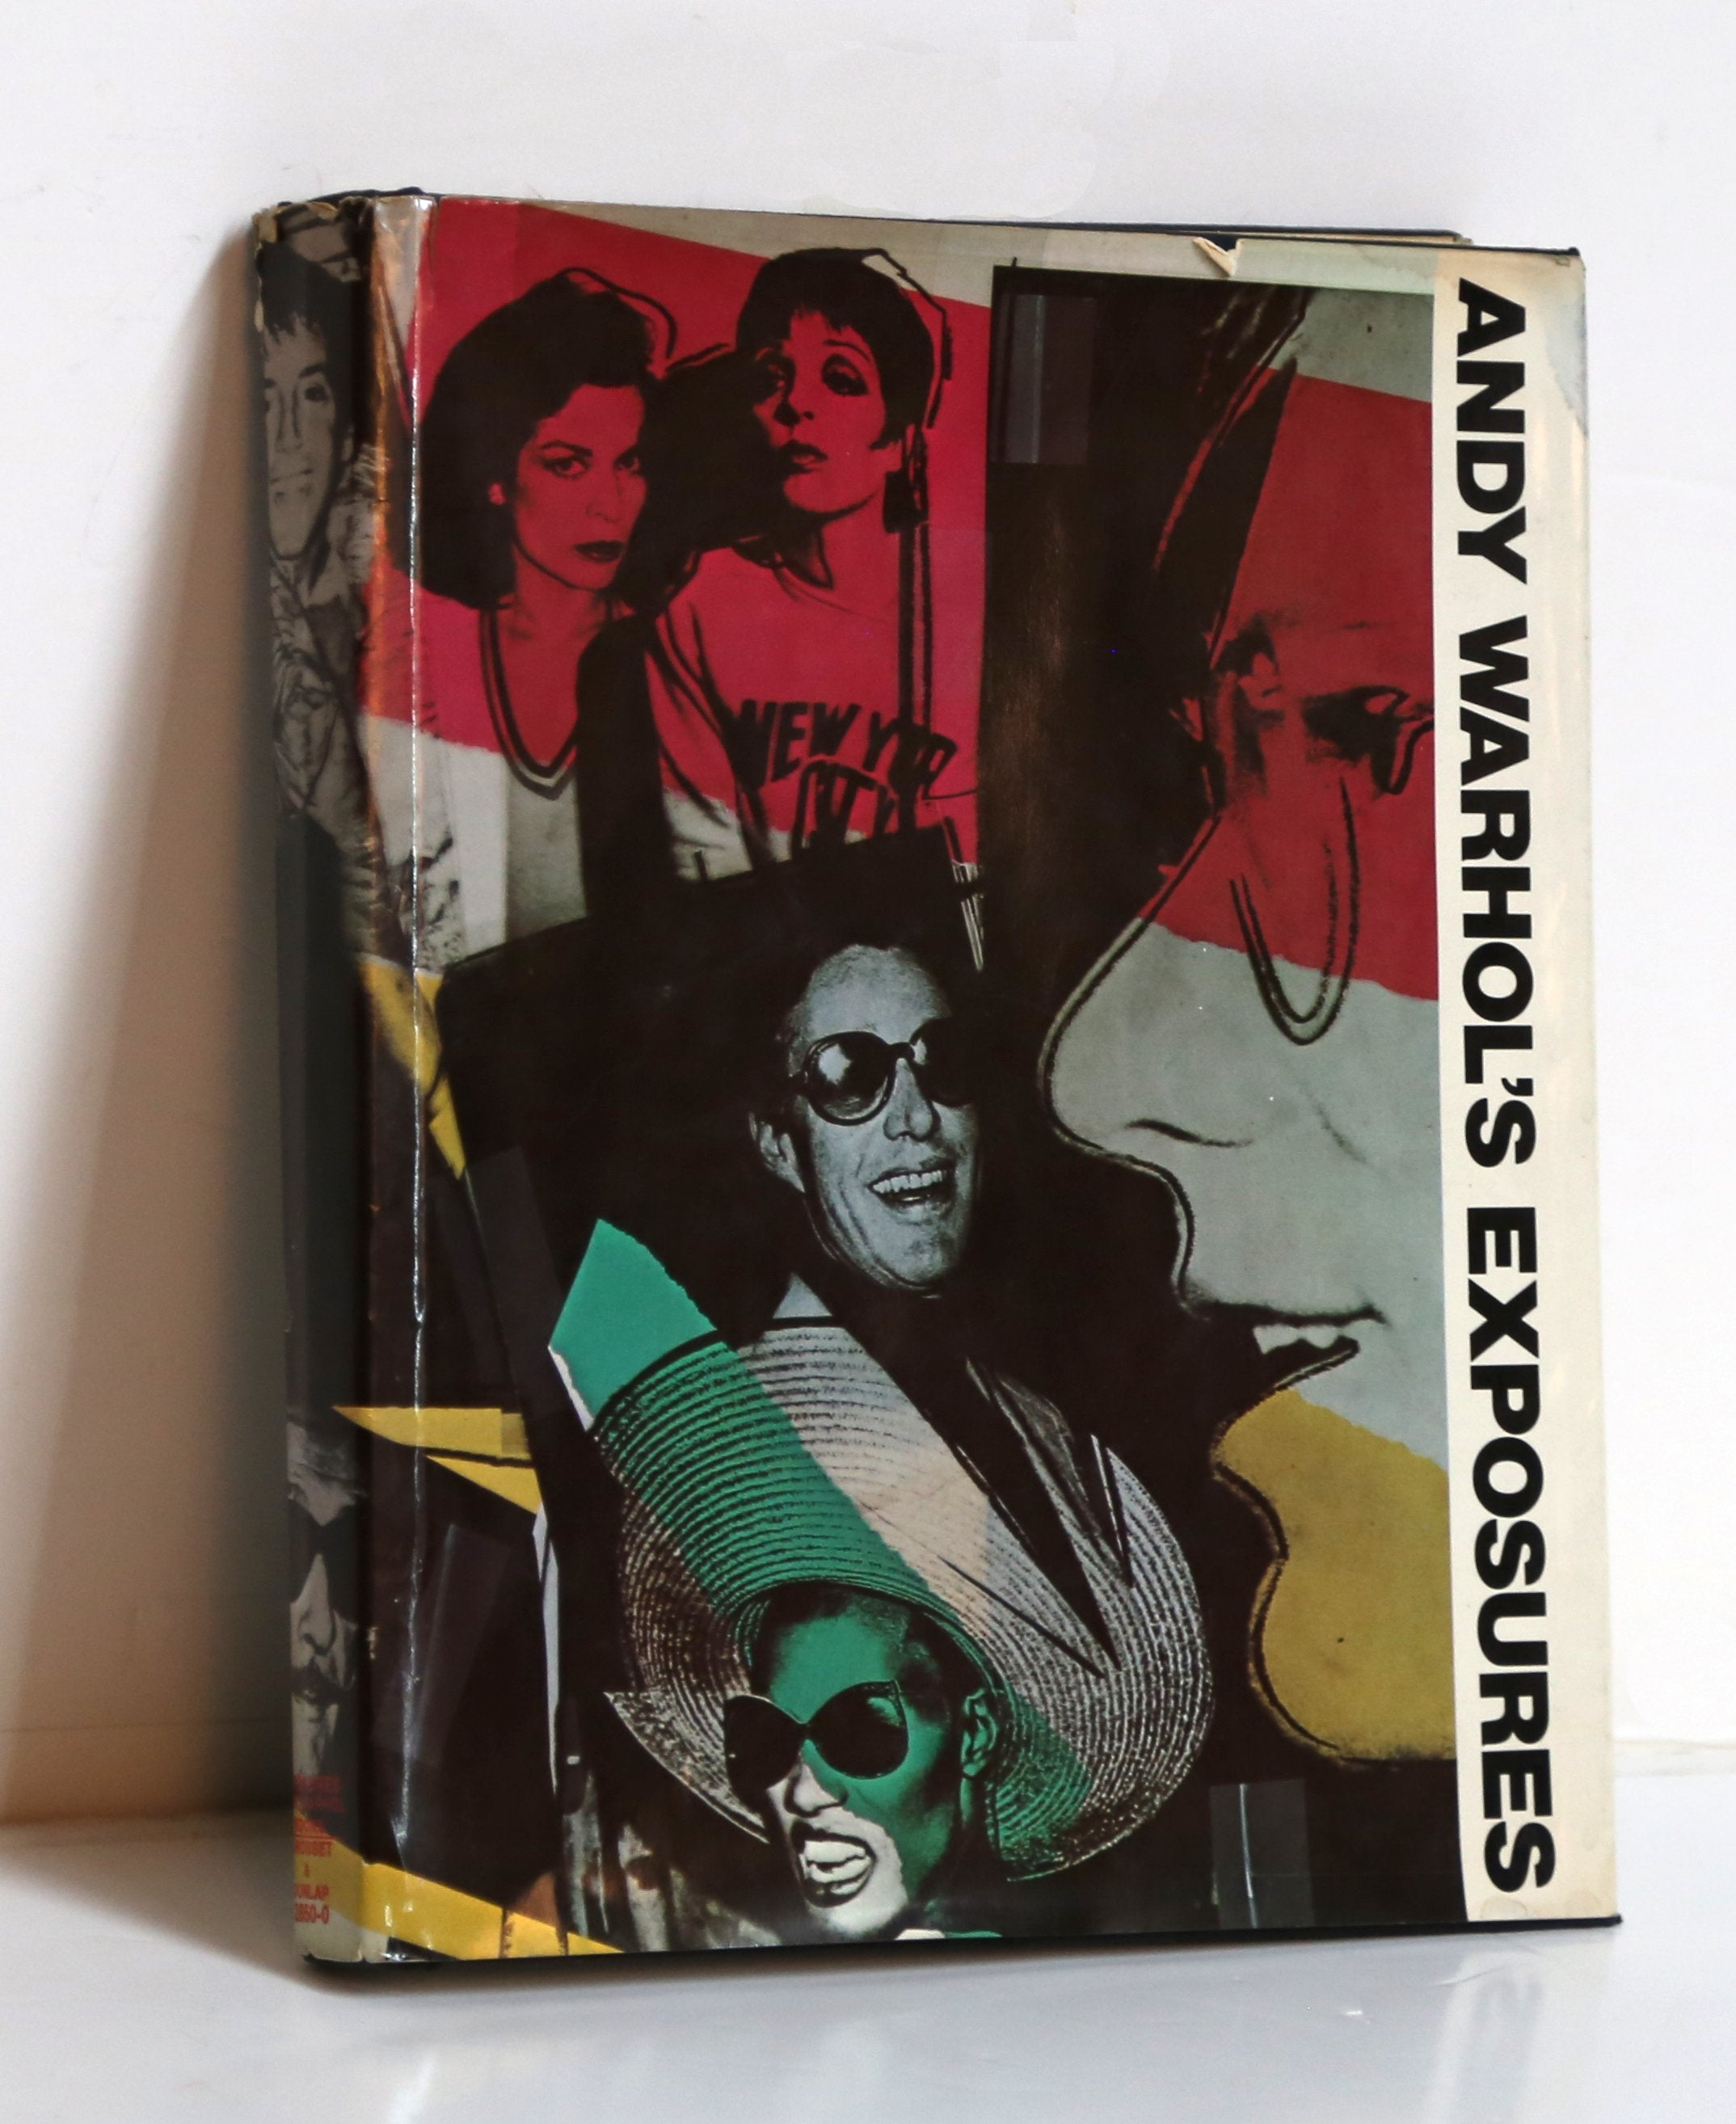 Andy Warhol, Andy Warhol's Exposures Book - RoGallery